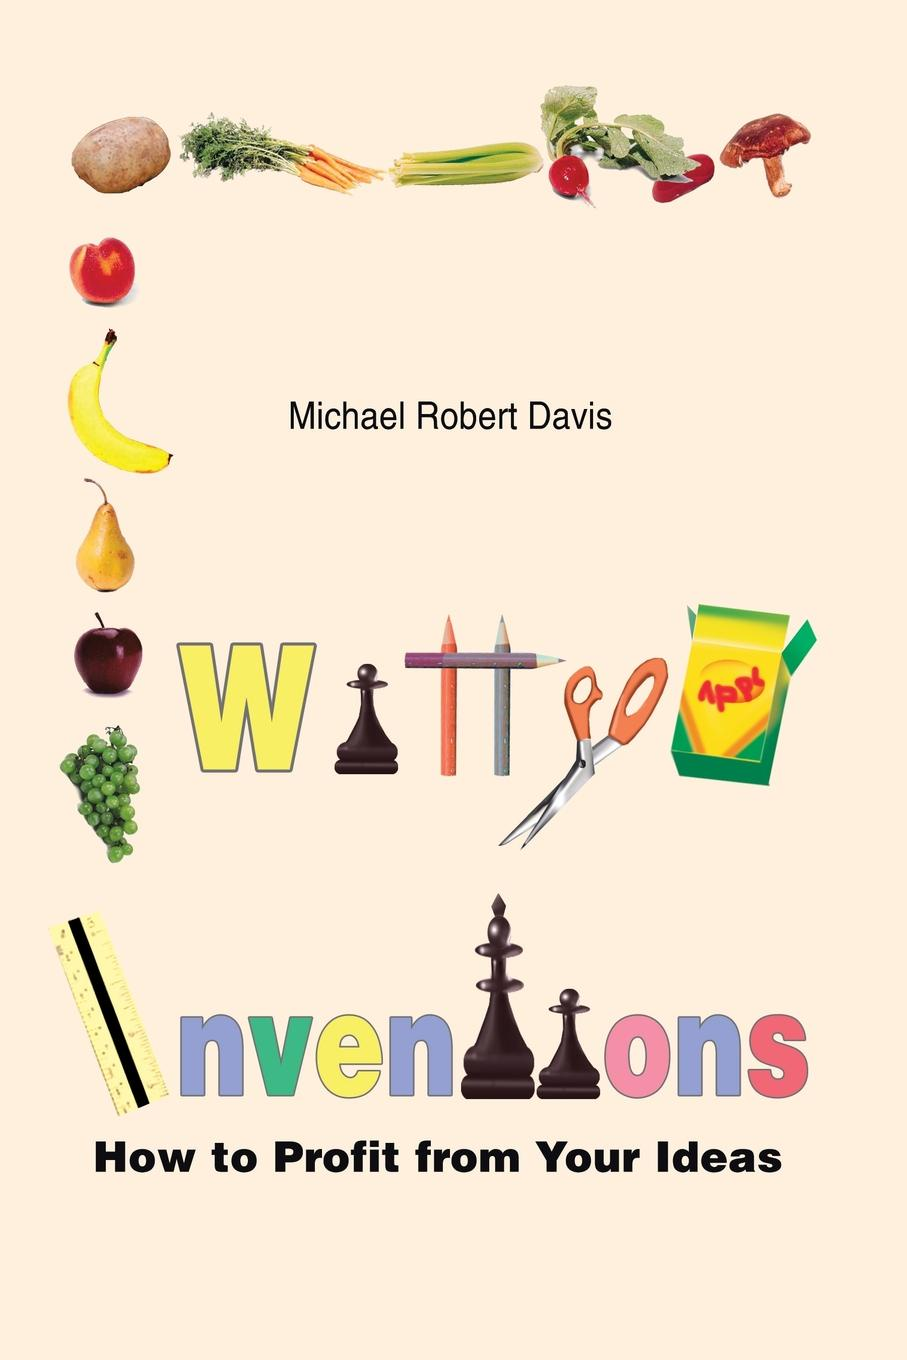 Michael Robert Davis Witty Inventions. How to Profit from Your Ideas harvey reese how to license your million dollar idea cash in on your inventions new product ideas software web business ideas and more